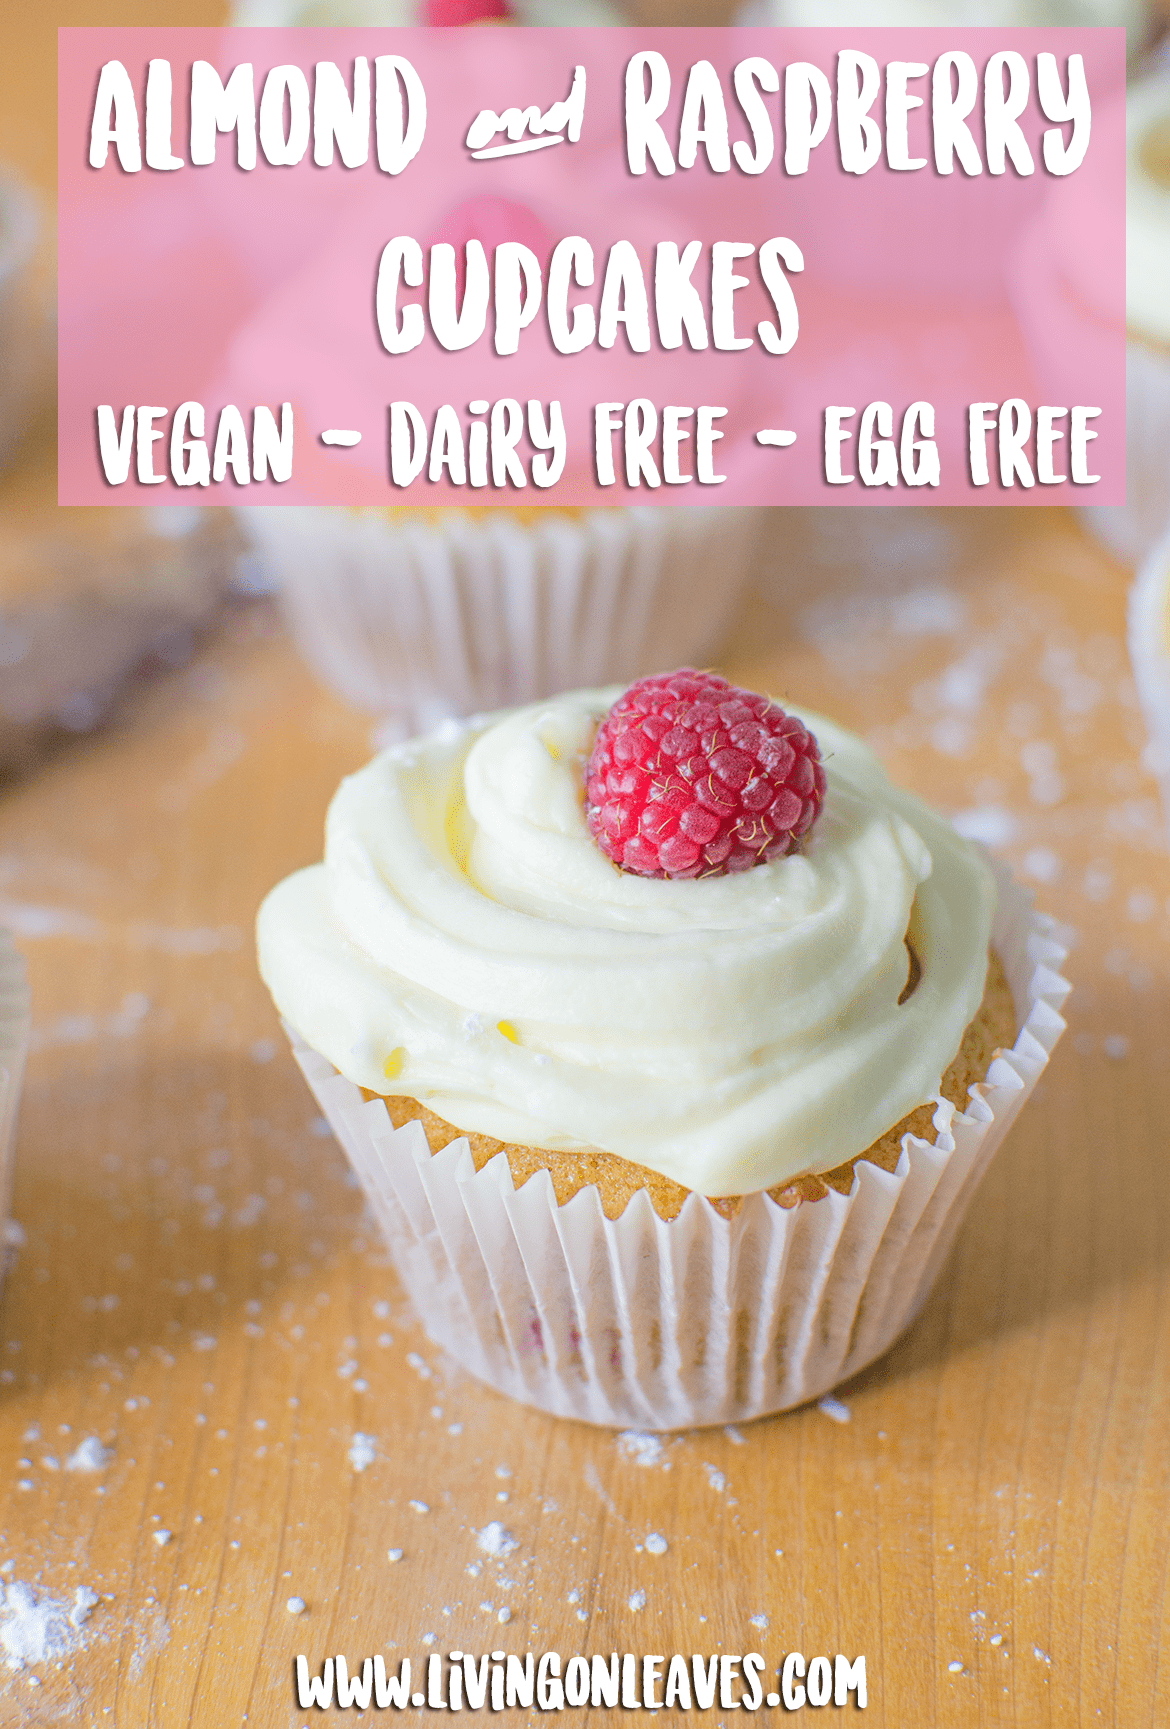 raspberry and almond vegan cupcakes recipe